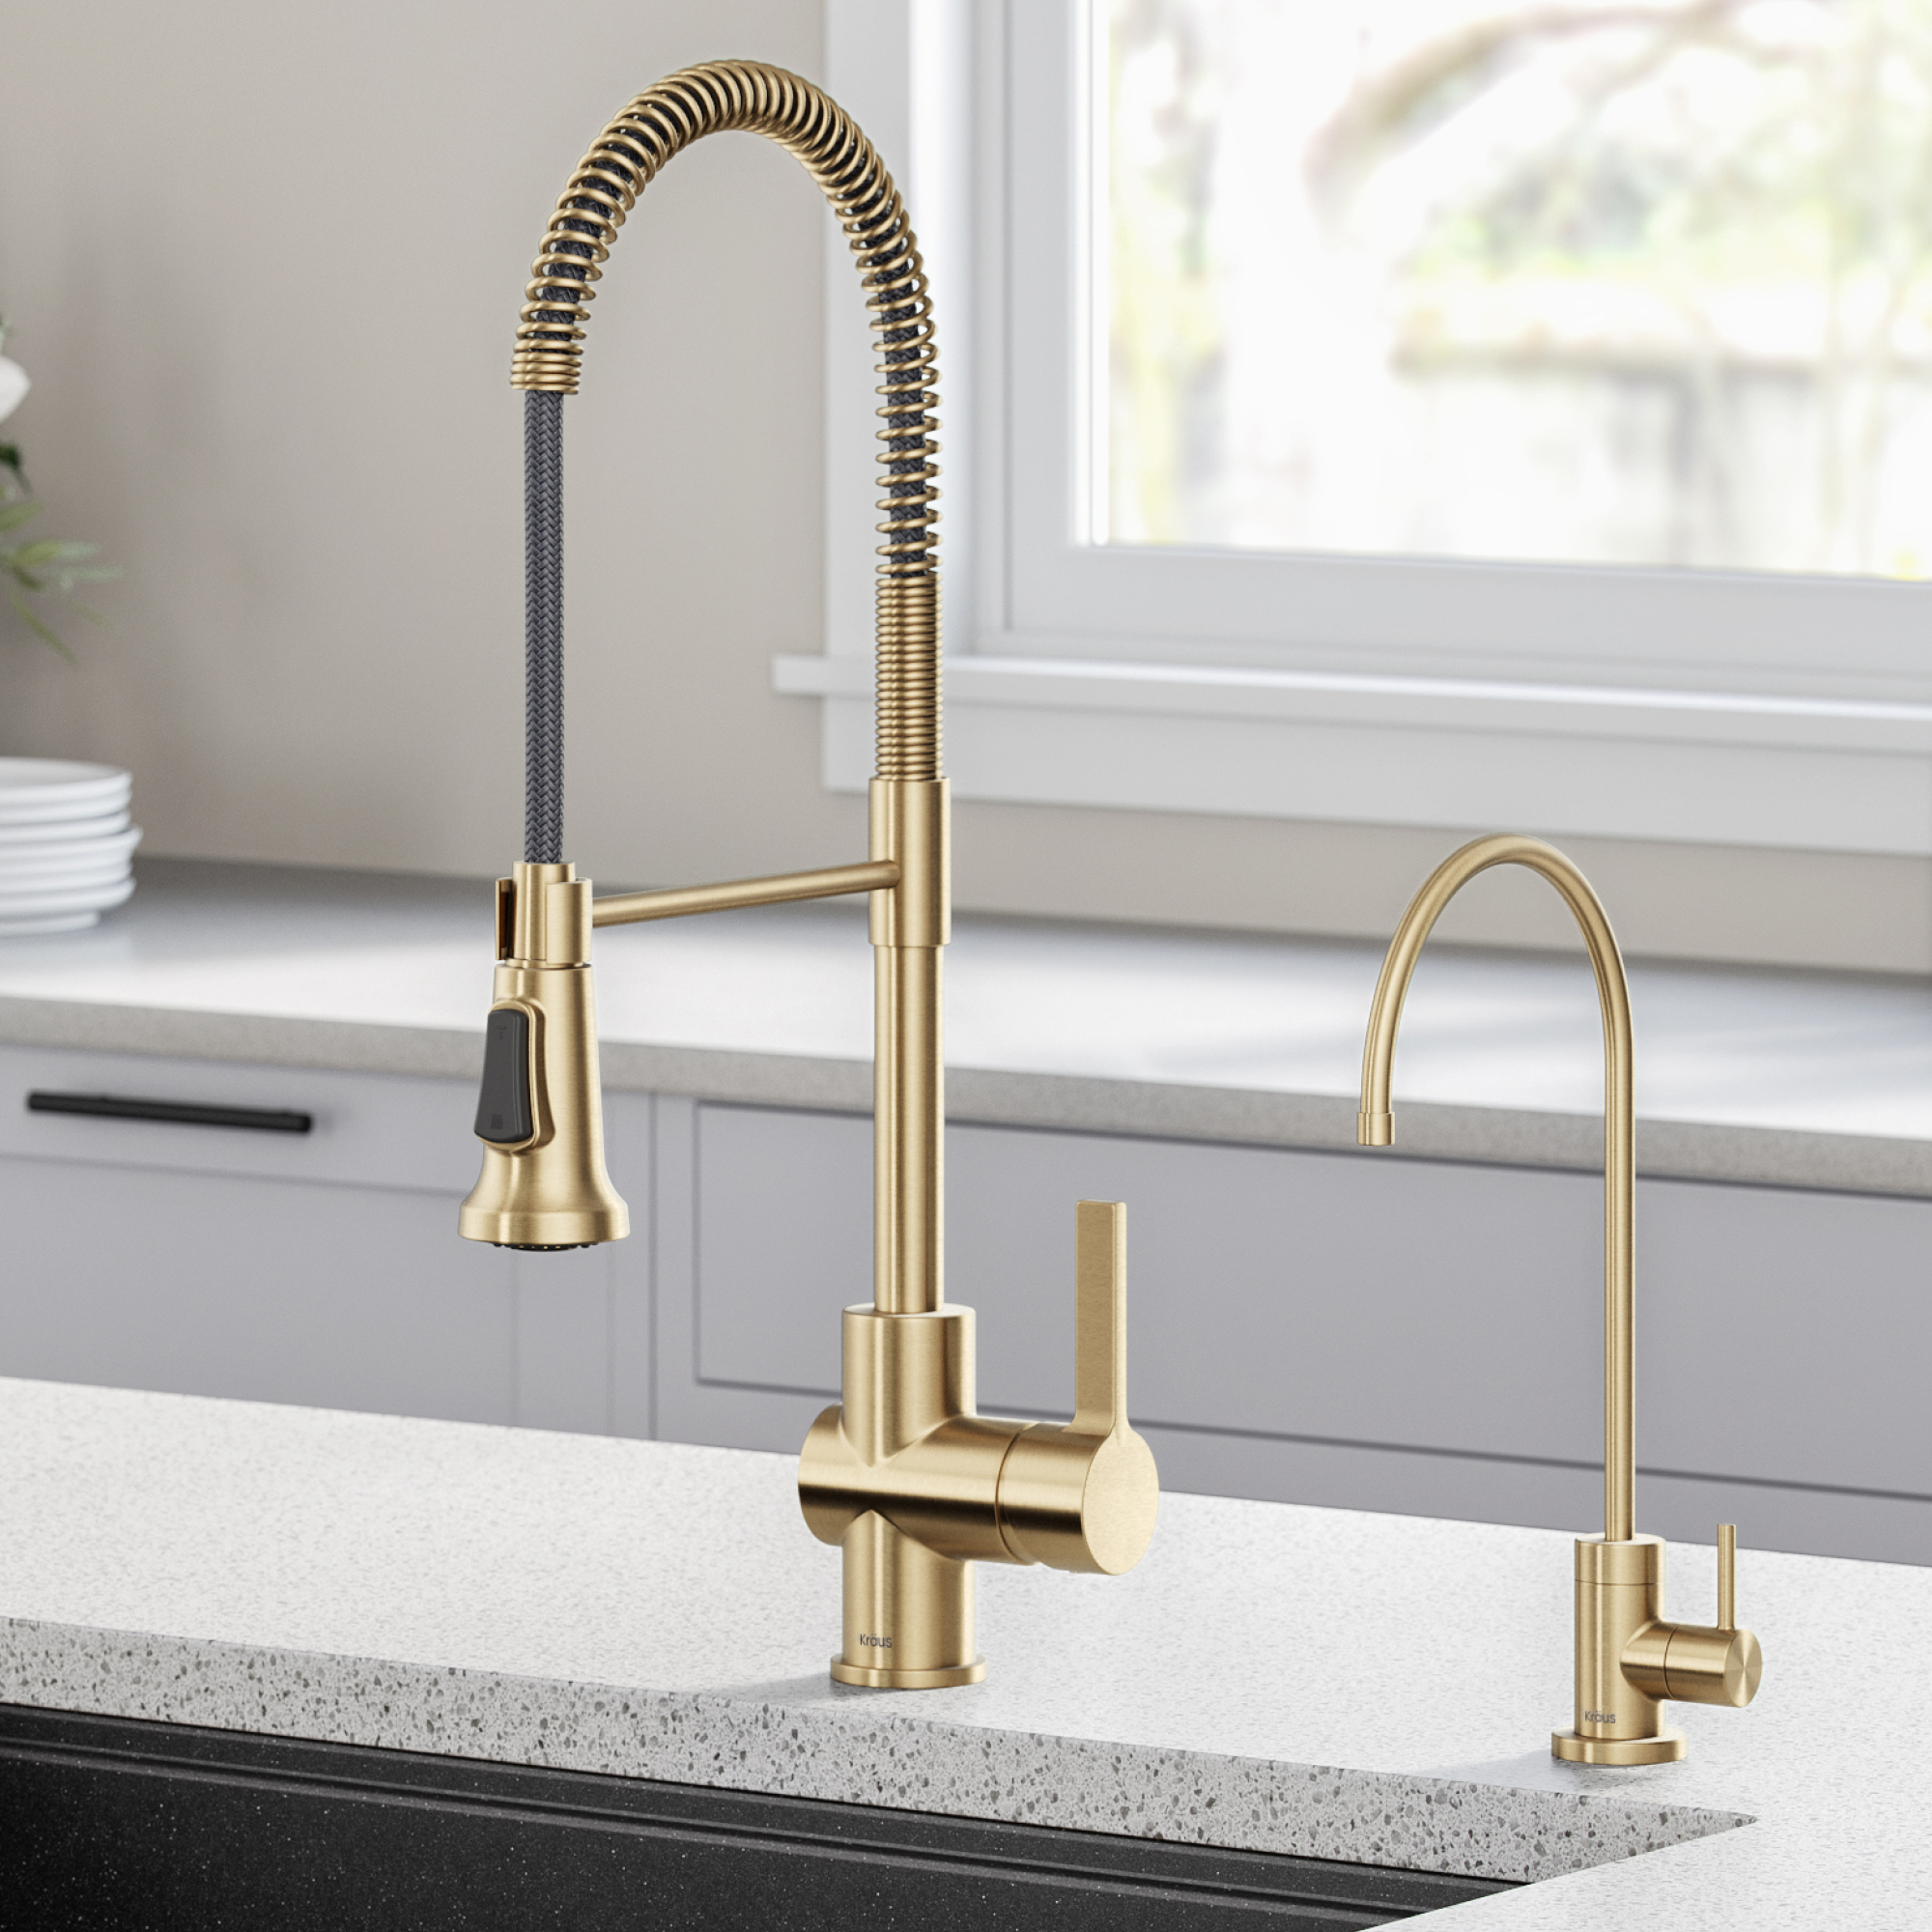 kraus britt commercial style kitchen faucet and purita water filter faucet combo in brushed gold